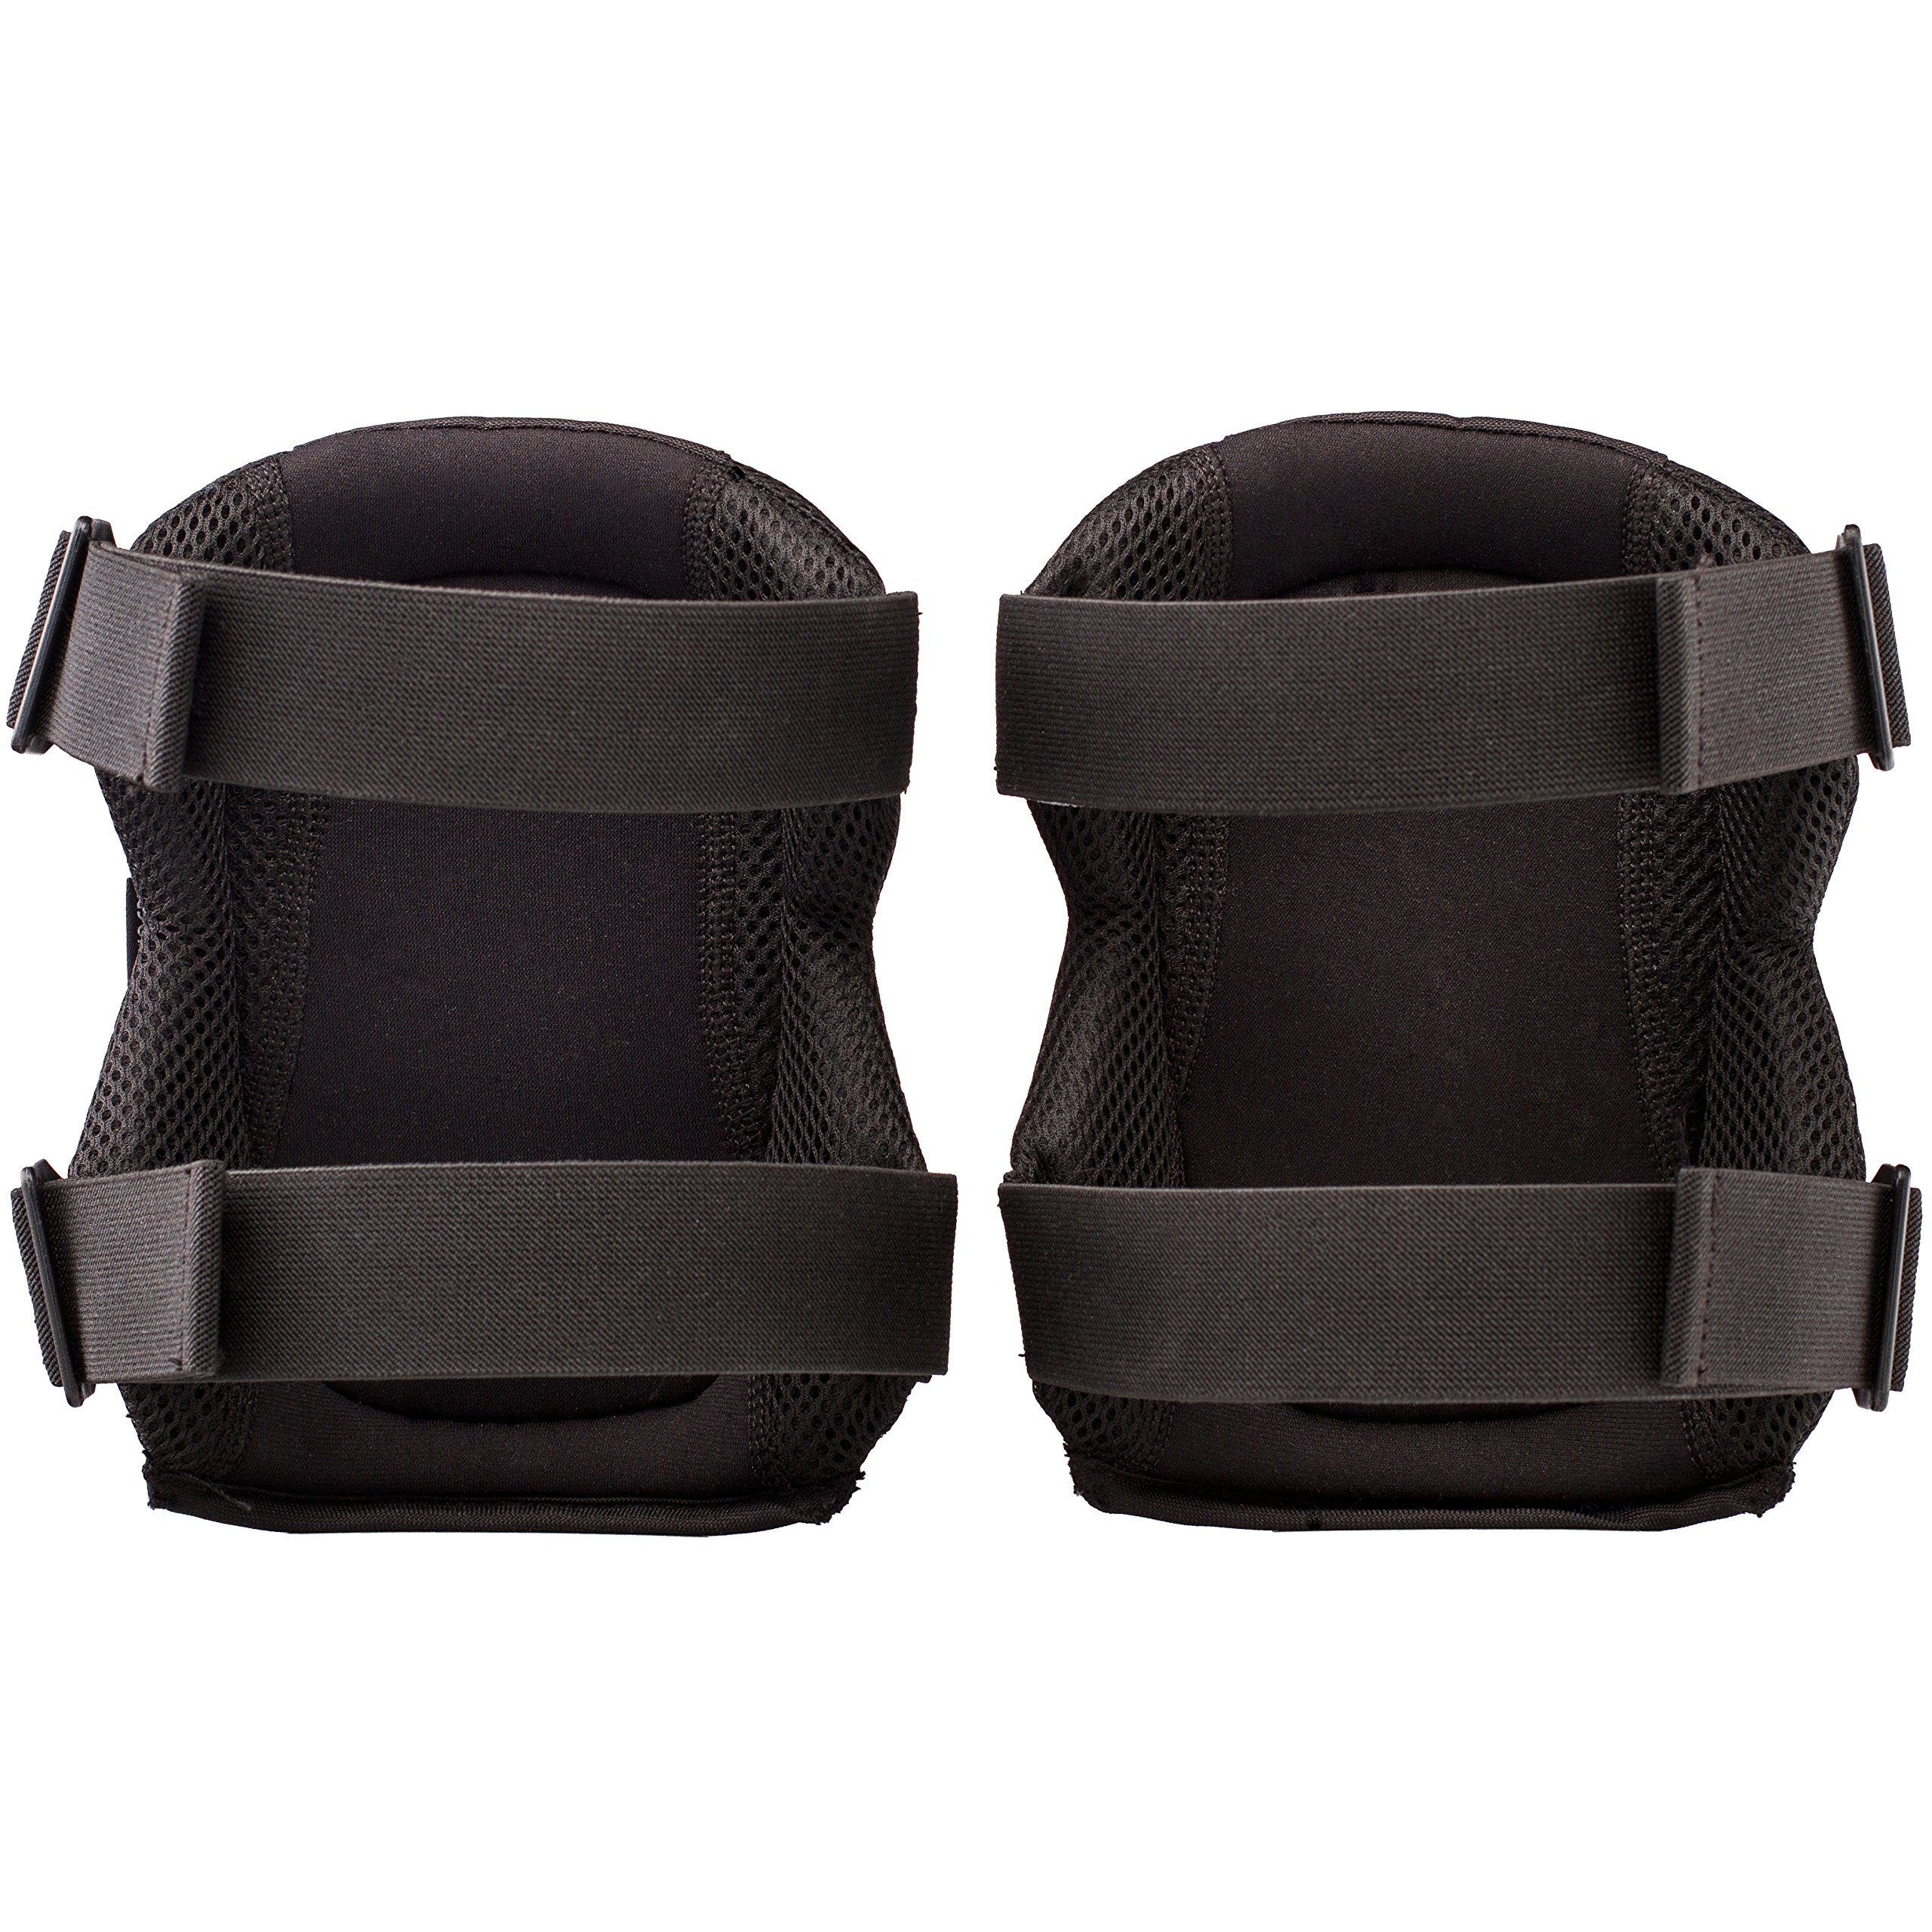 NoCry Professional Knee Pads with Heavy Duty Foam Padding and Comfortable Gel Cushion, Strong Double Straps and Adjustable Easy-Fix Clips by NoCry (Image #7)